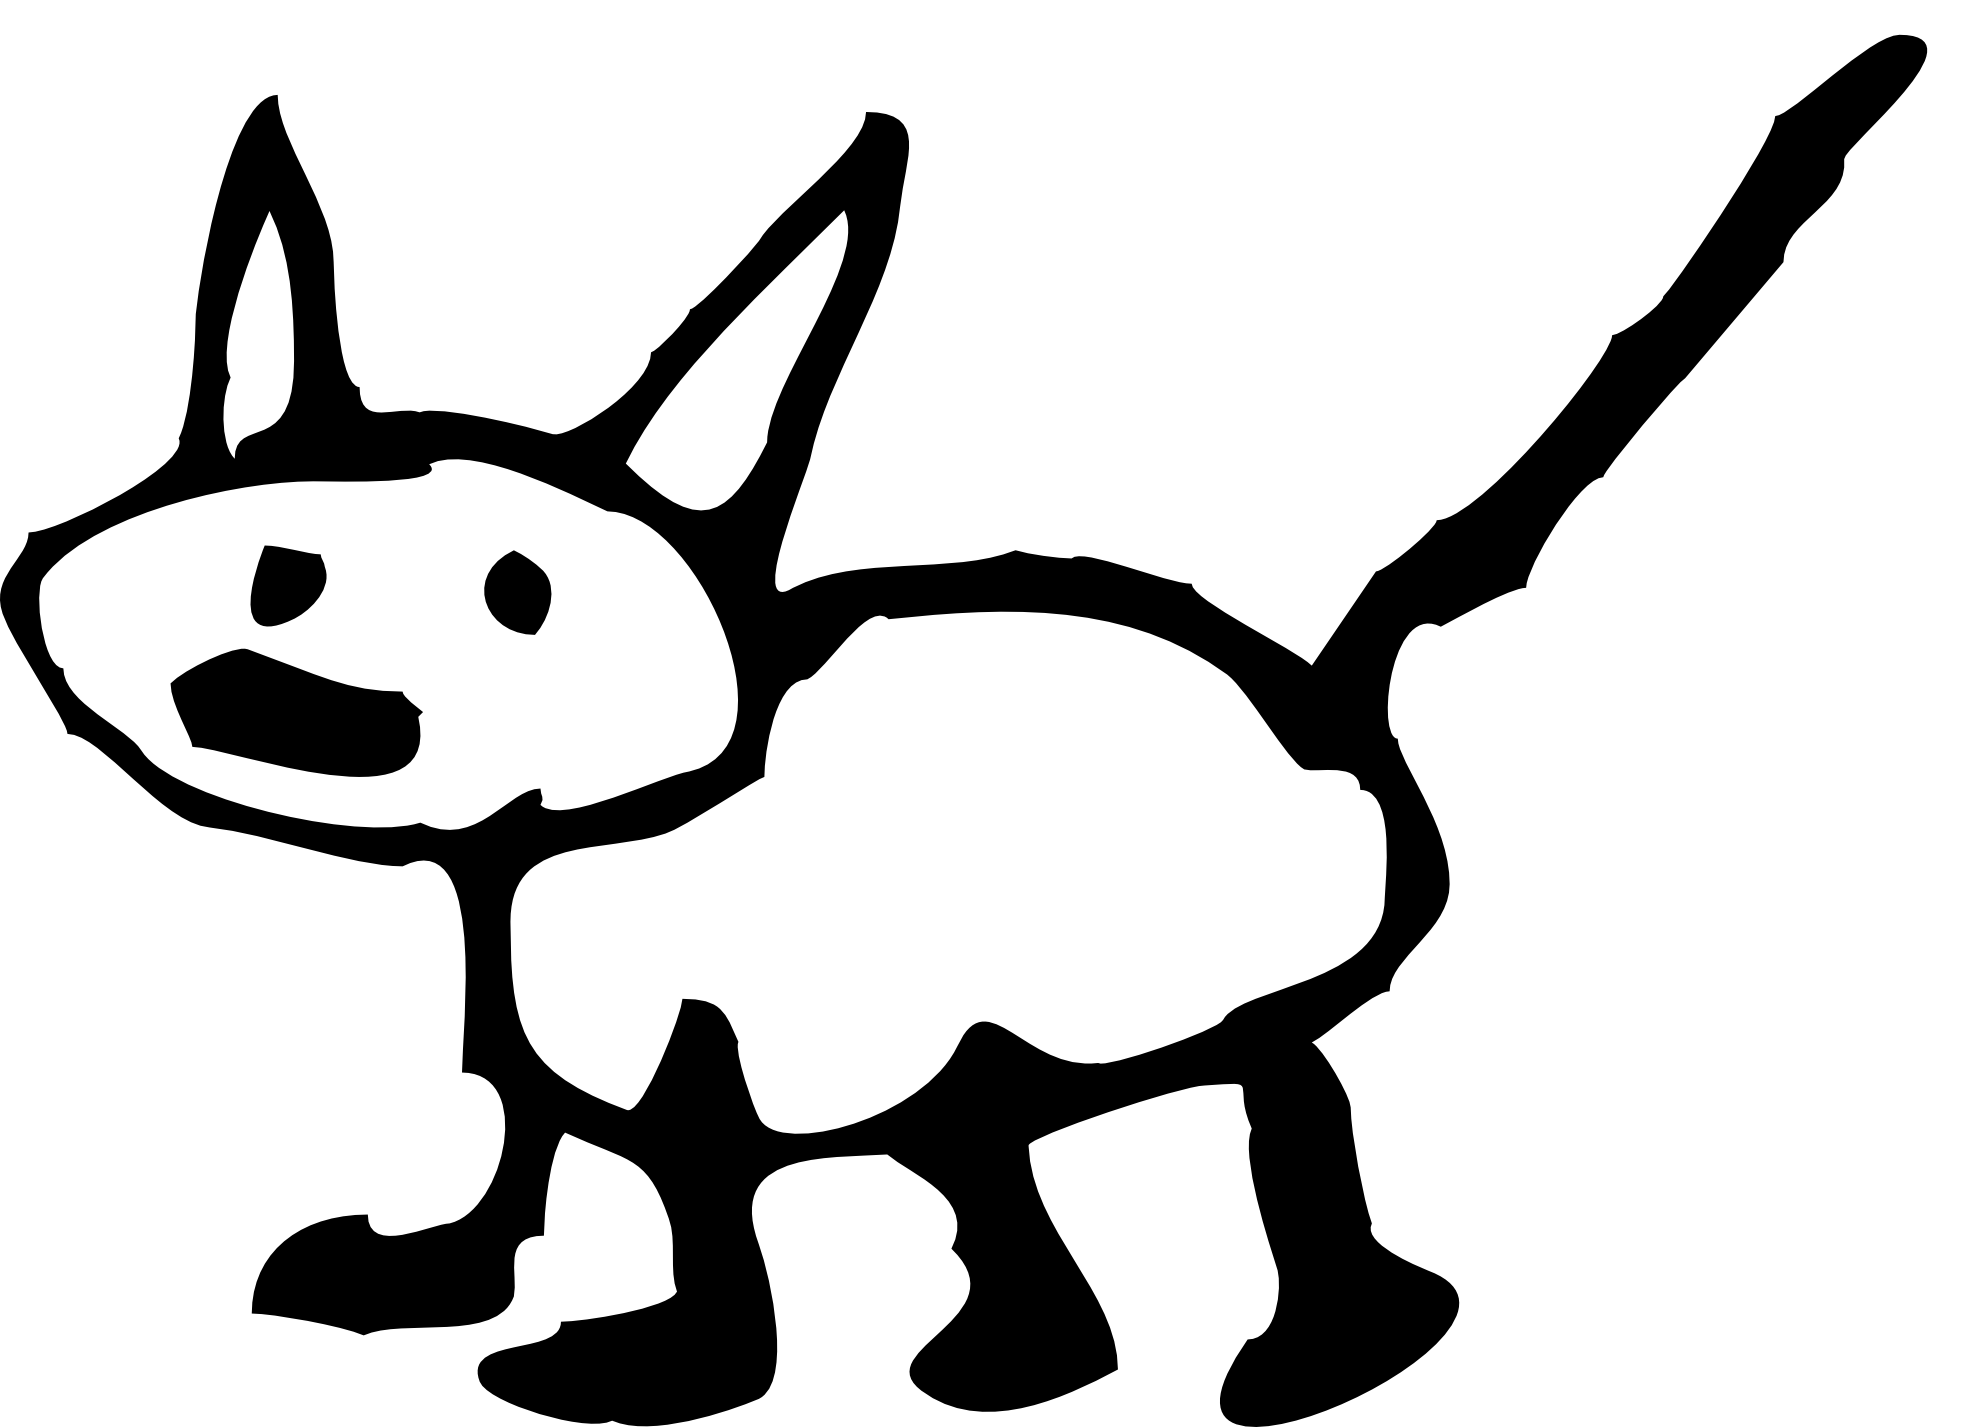 triceratops clipart black and white